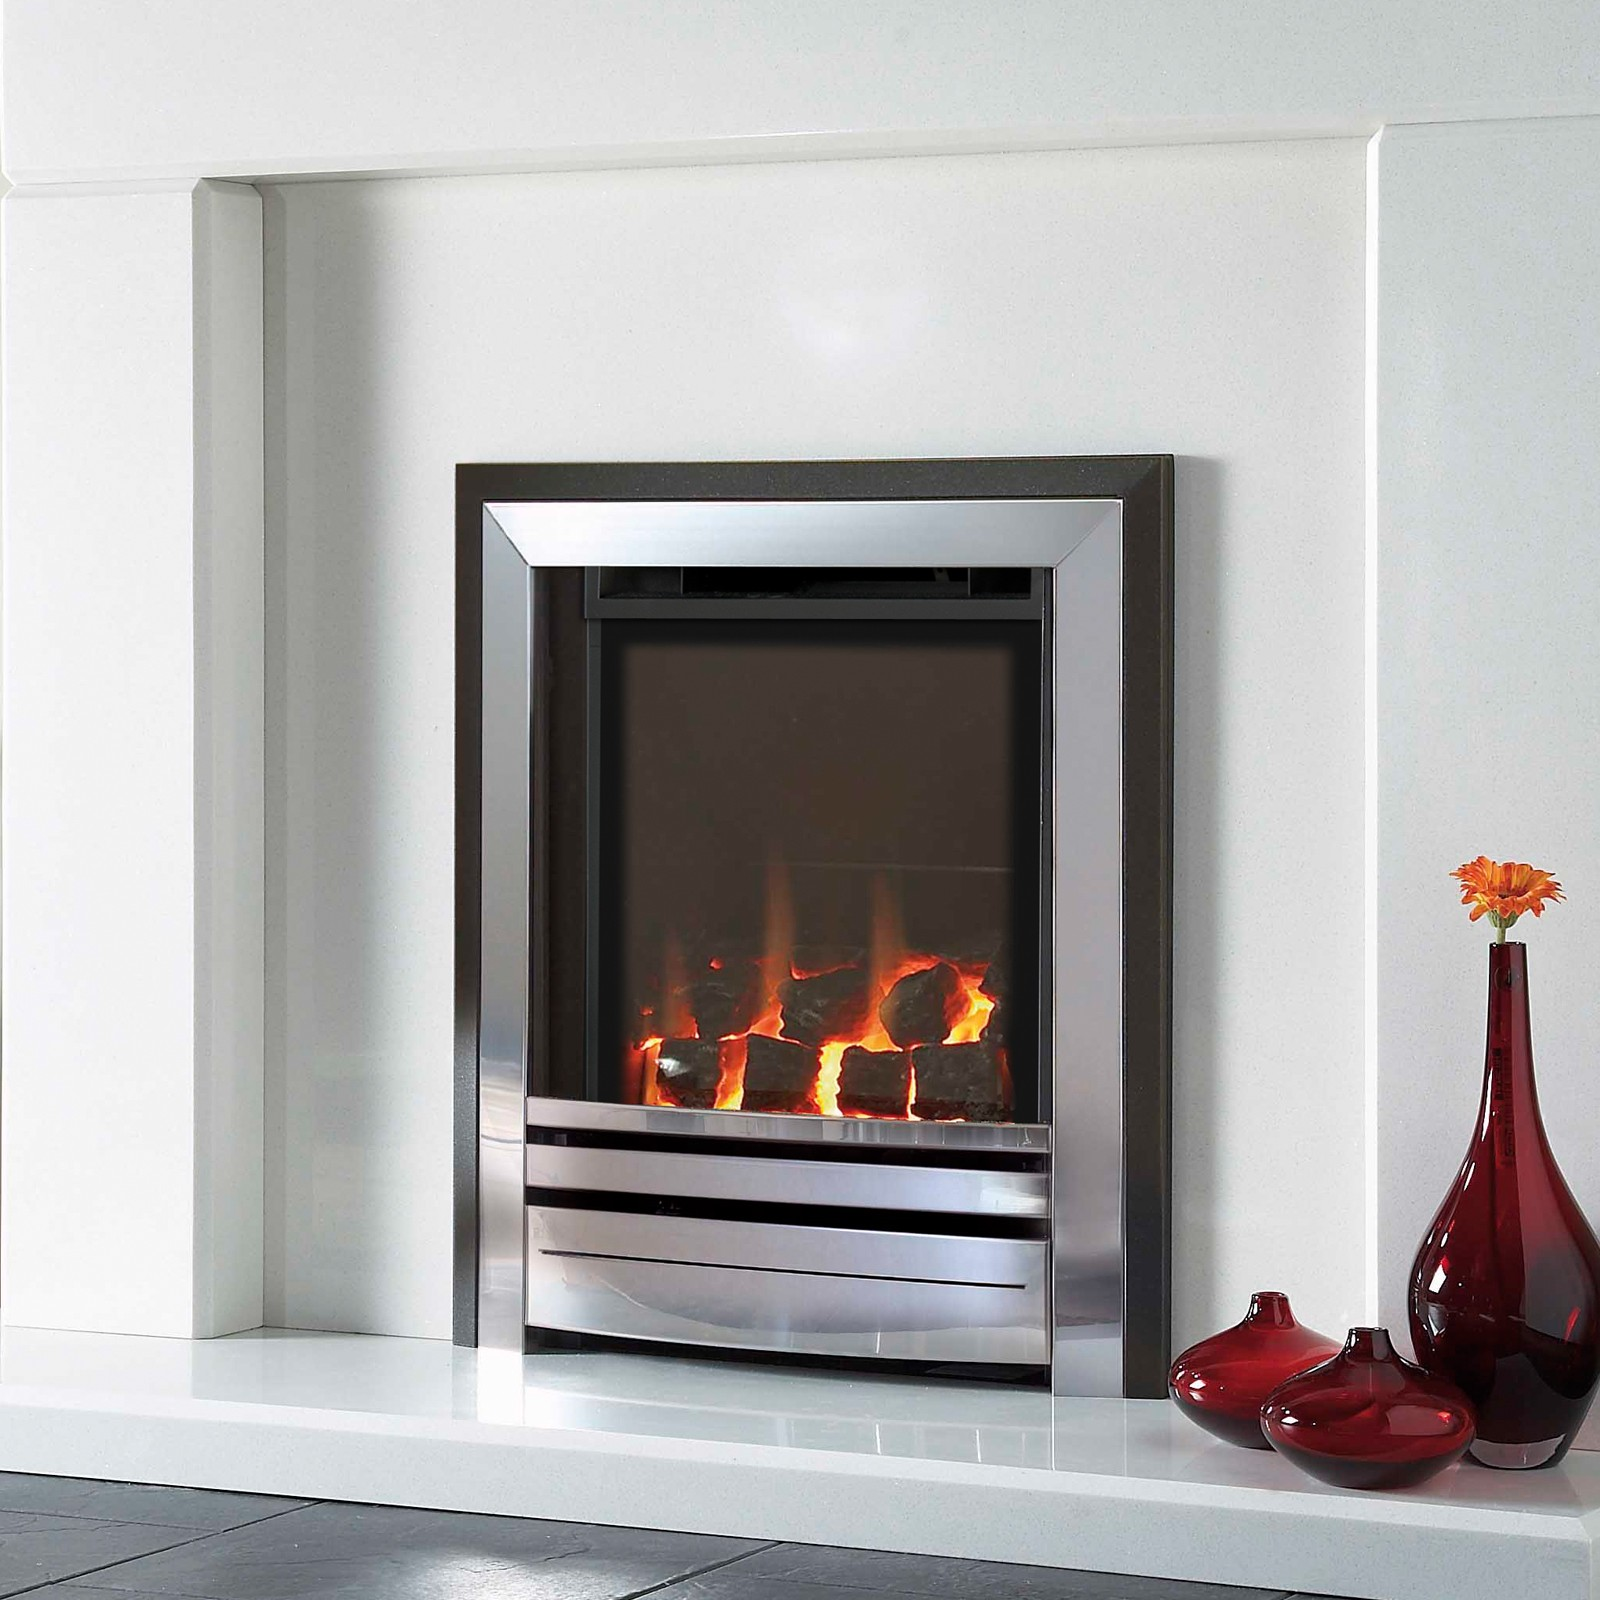 Efficiency of gas fireplace - Verine Frontier He Black Silver Coal